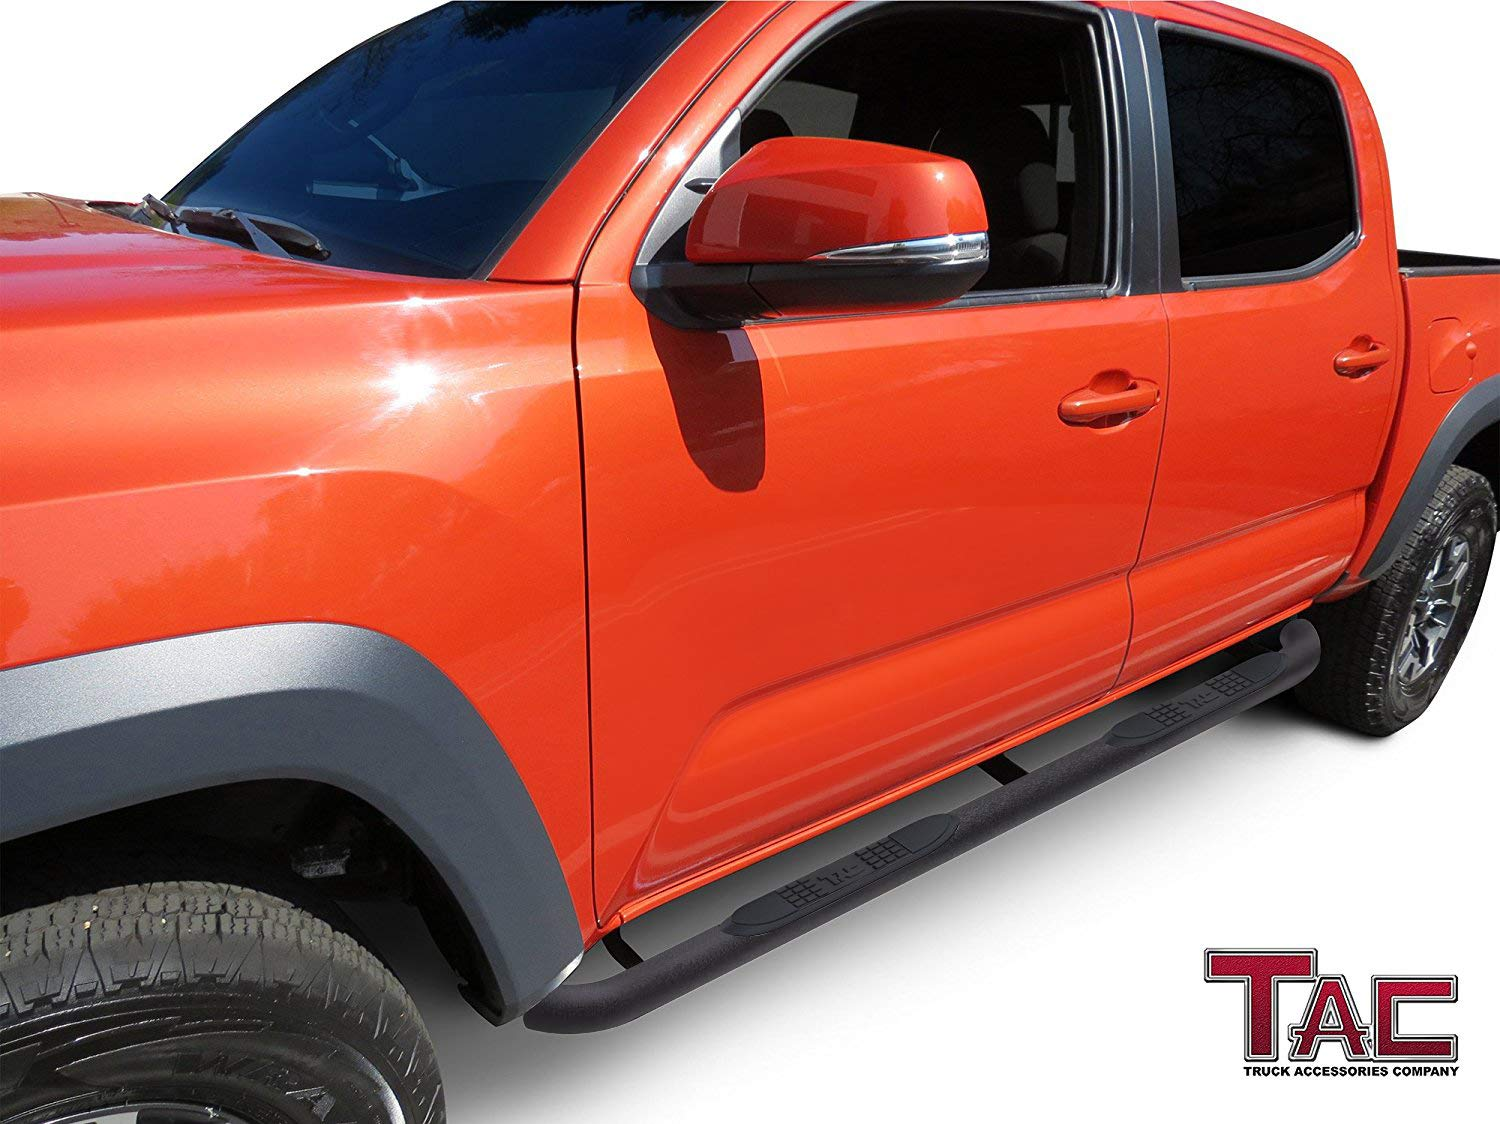 TAC Side Steps Fit 2005-2019 Toyota Tacoma Access Cab 4 Oval Bend Fine Texture Black Powder Nerf Bars Running Boards Mold Form Brackets + OE Standard Quality